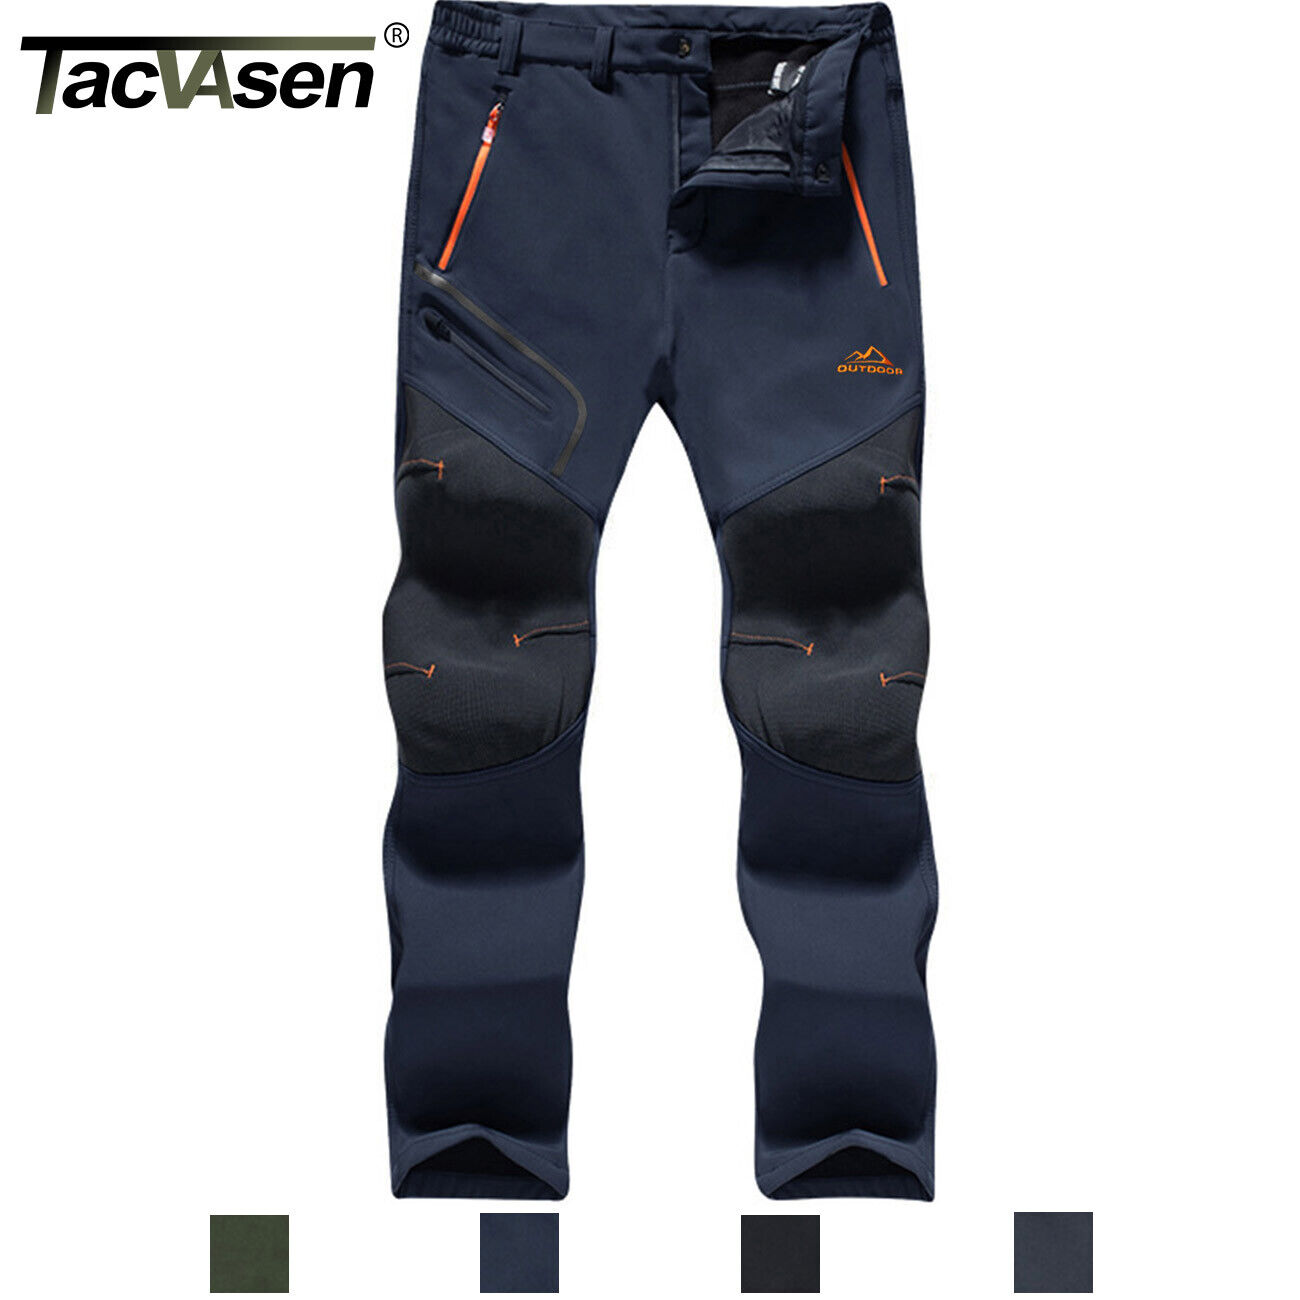 TACVASEN Winter Hiking Fleece Pants Warm Windproof Snow Skii